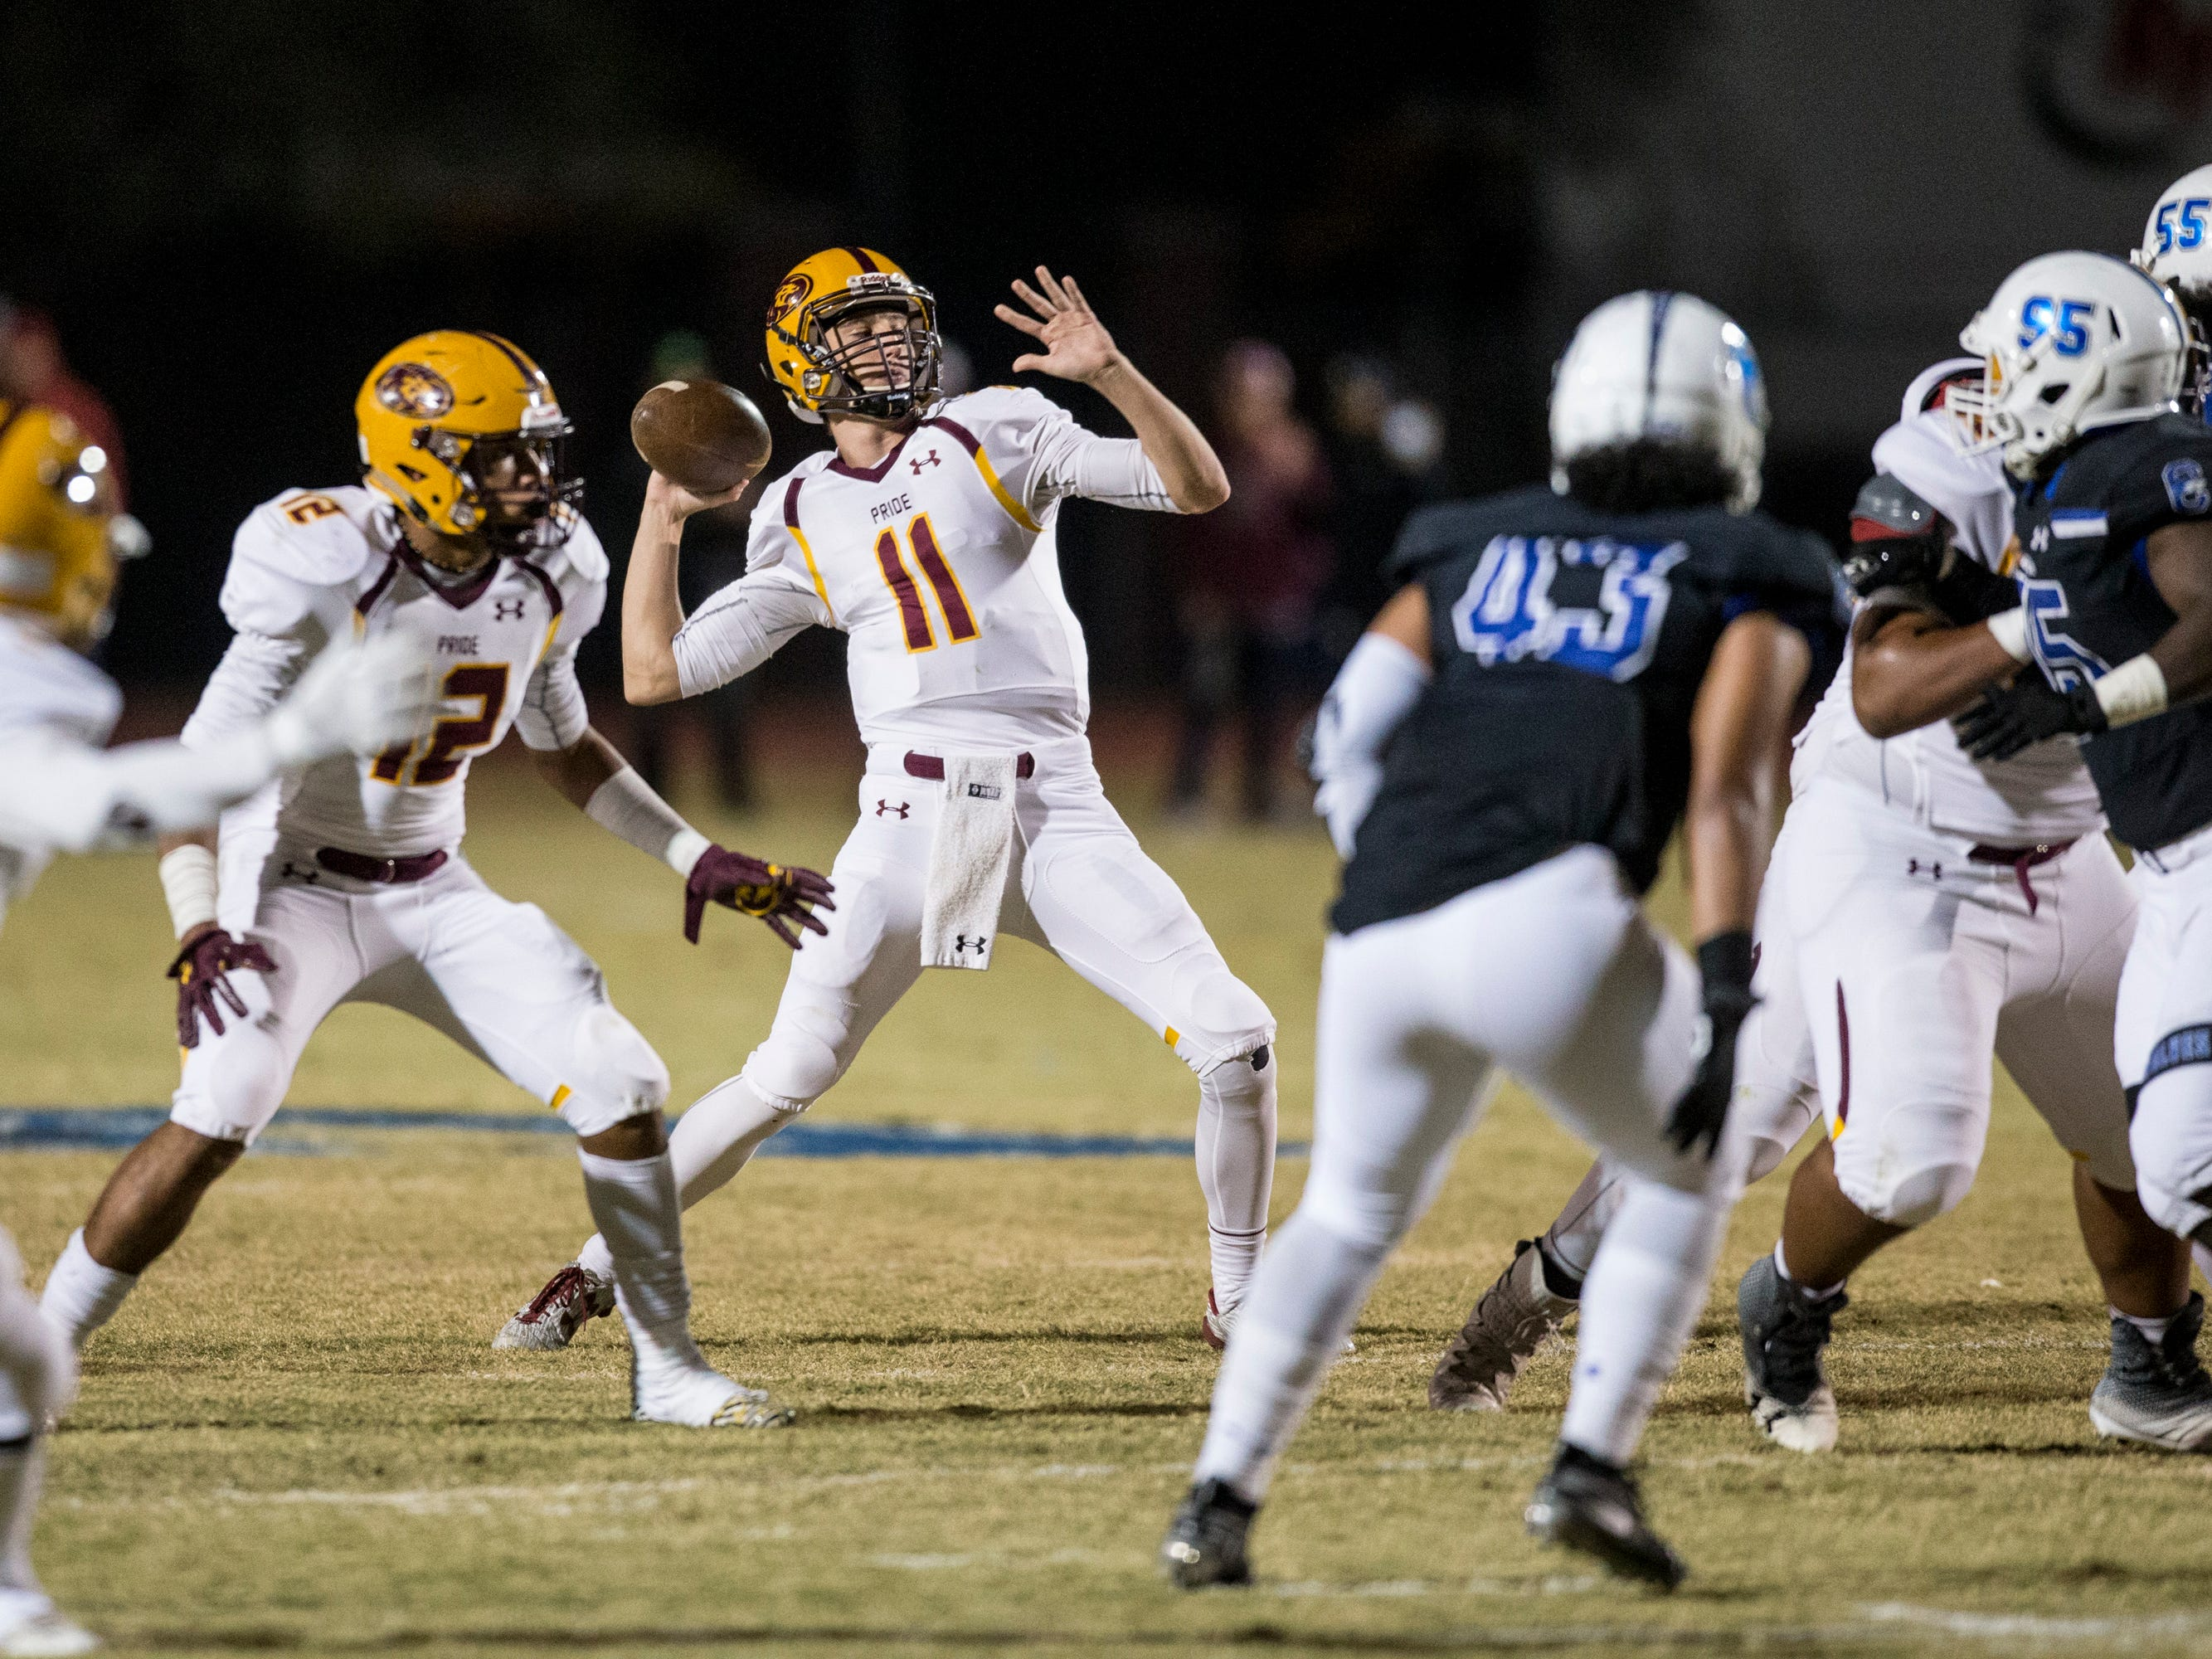 Mountain Pointe's Nick Wallerstedt throws for a touchdown against Chandler in the first half on Friday, Nov. 9, 2018, at Chandler High School in Chandler, Ariz.